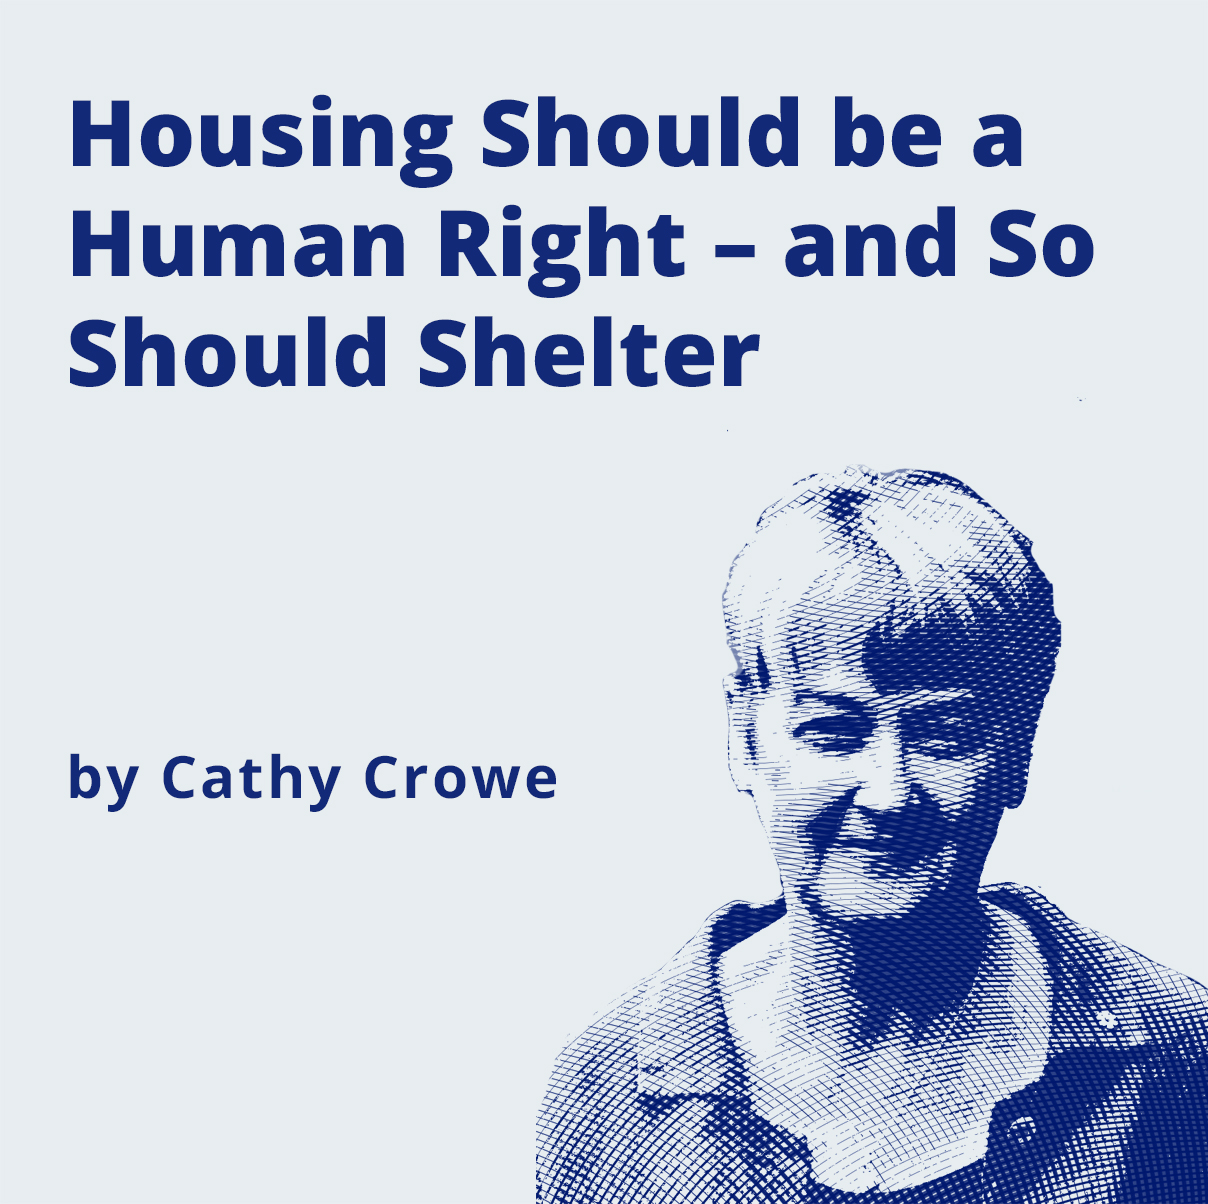 image - Housing Should be a Human Right - and So Should Shelter by Cathy Crowe